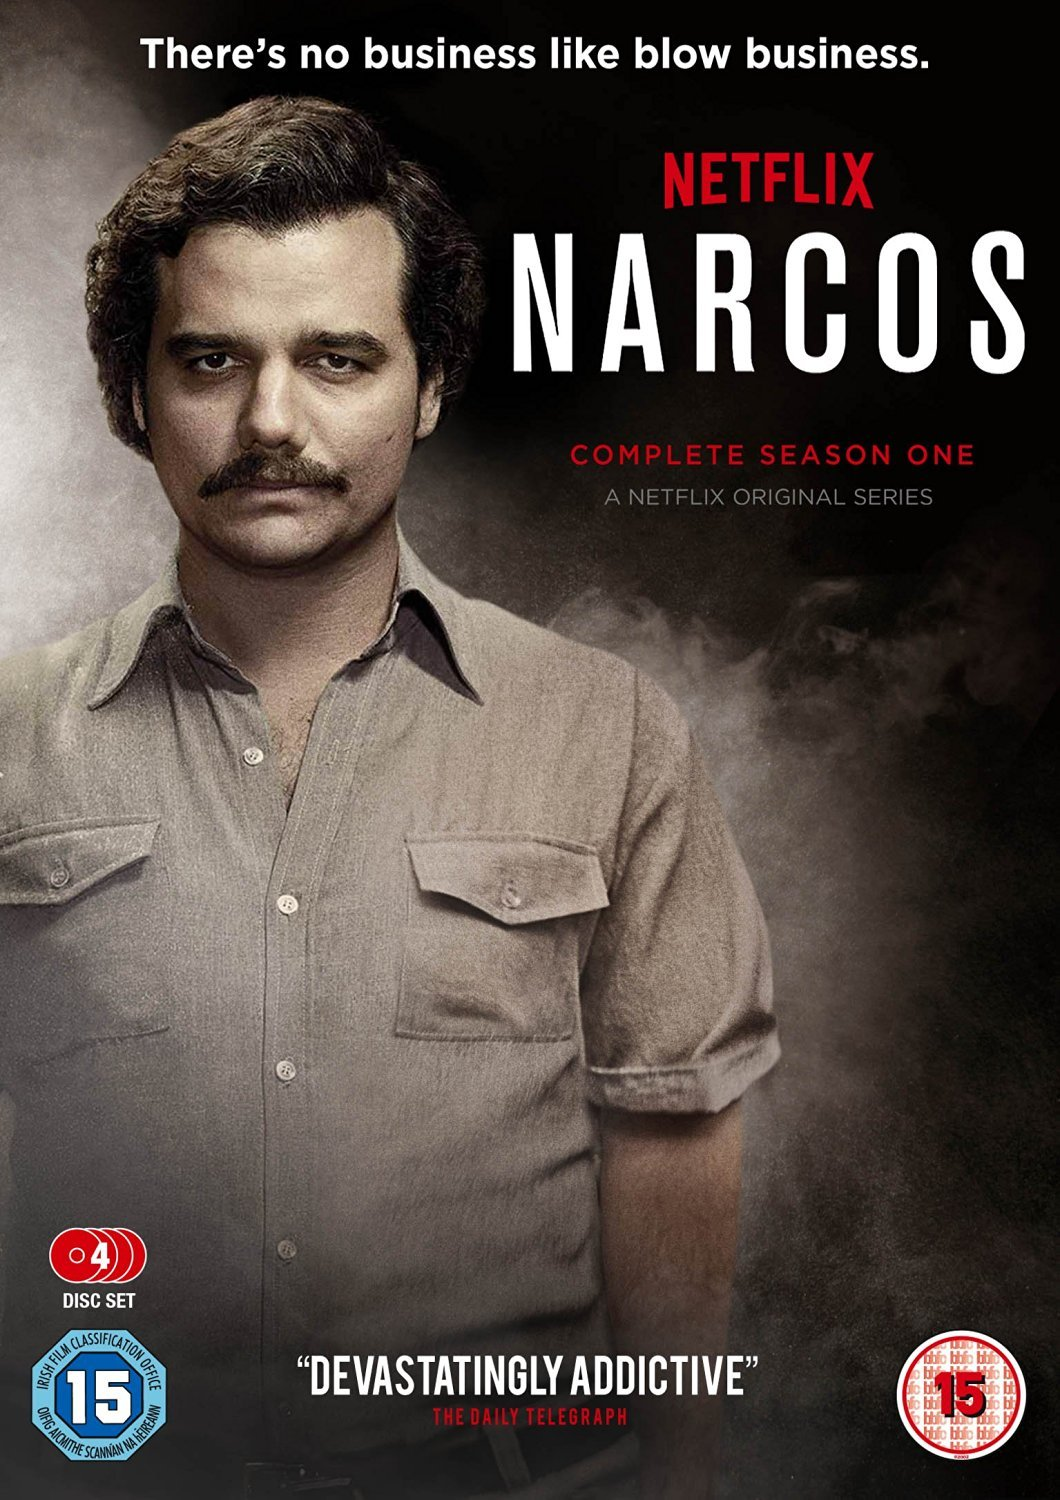 Amazon.in: Buy Narcos Season 1 [DVD] - Boyd Holbrook (Actor ...